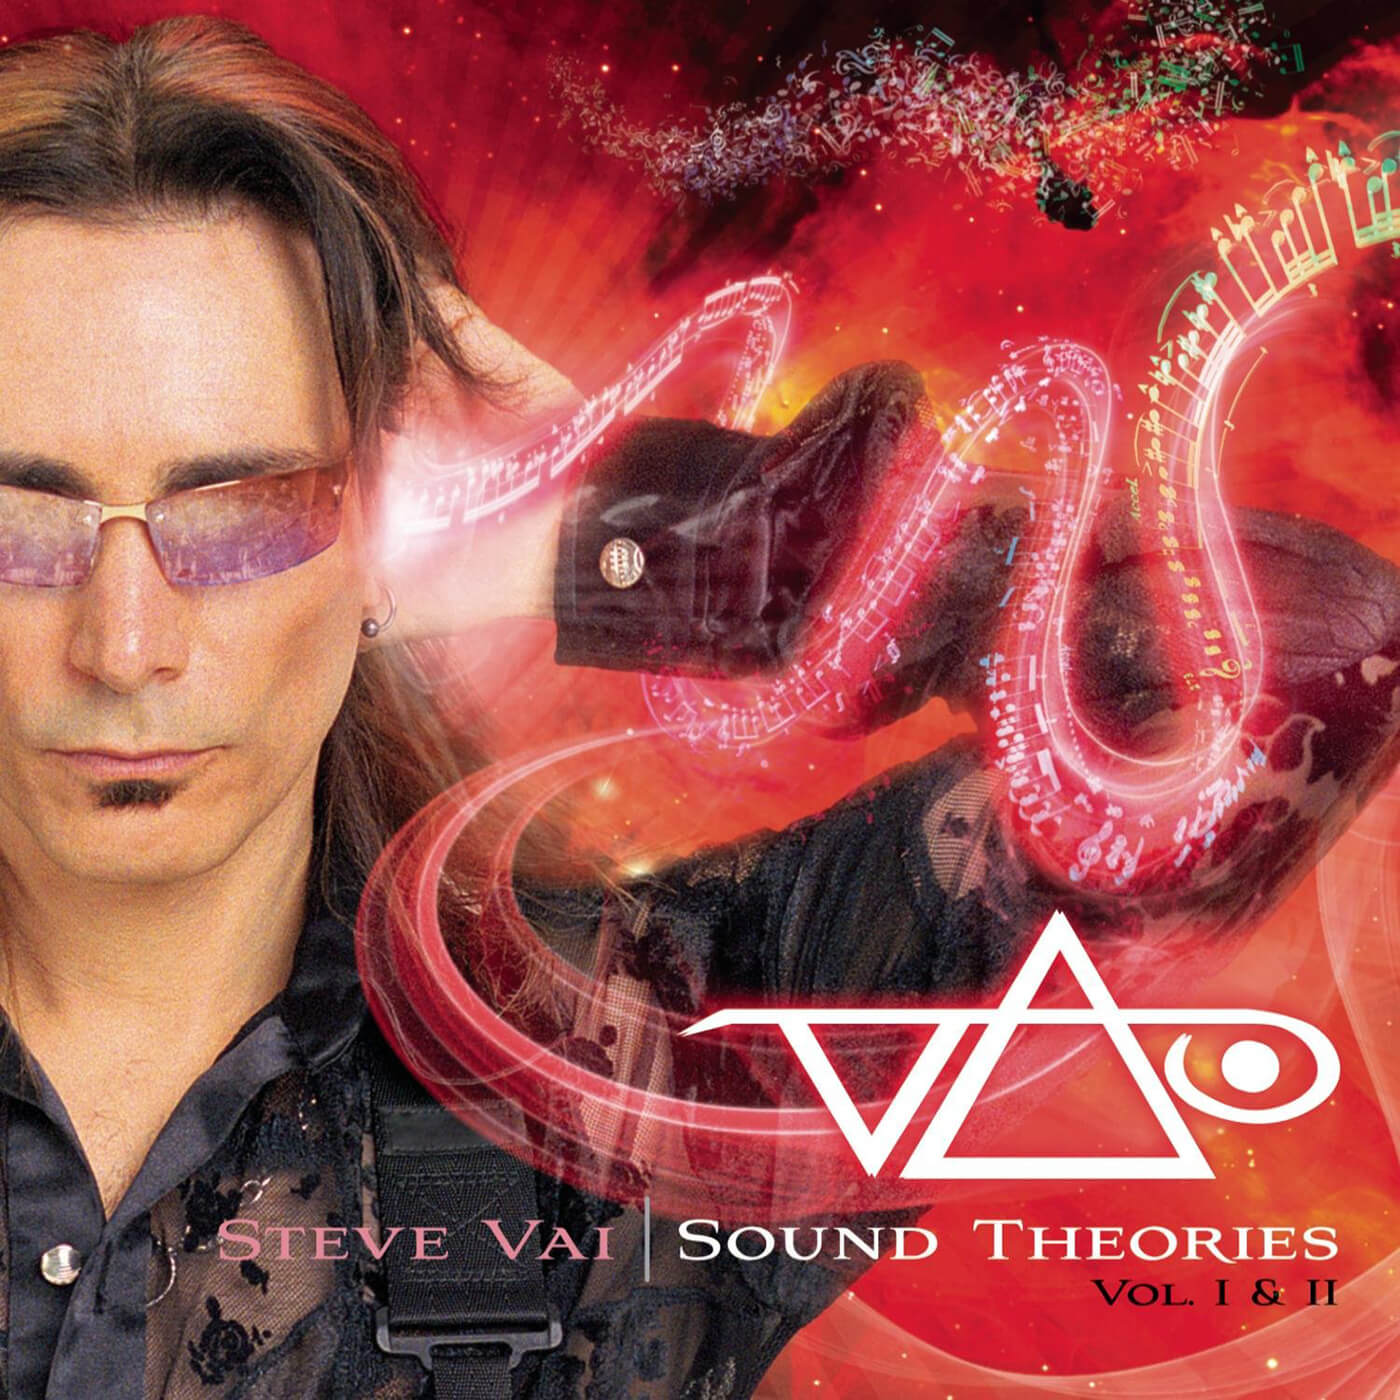 Sound Theories Vol. I & II - Steve Vai